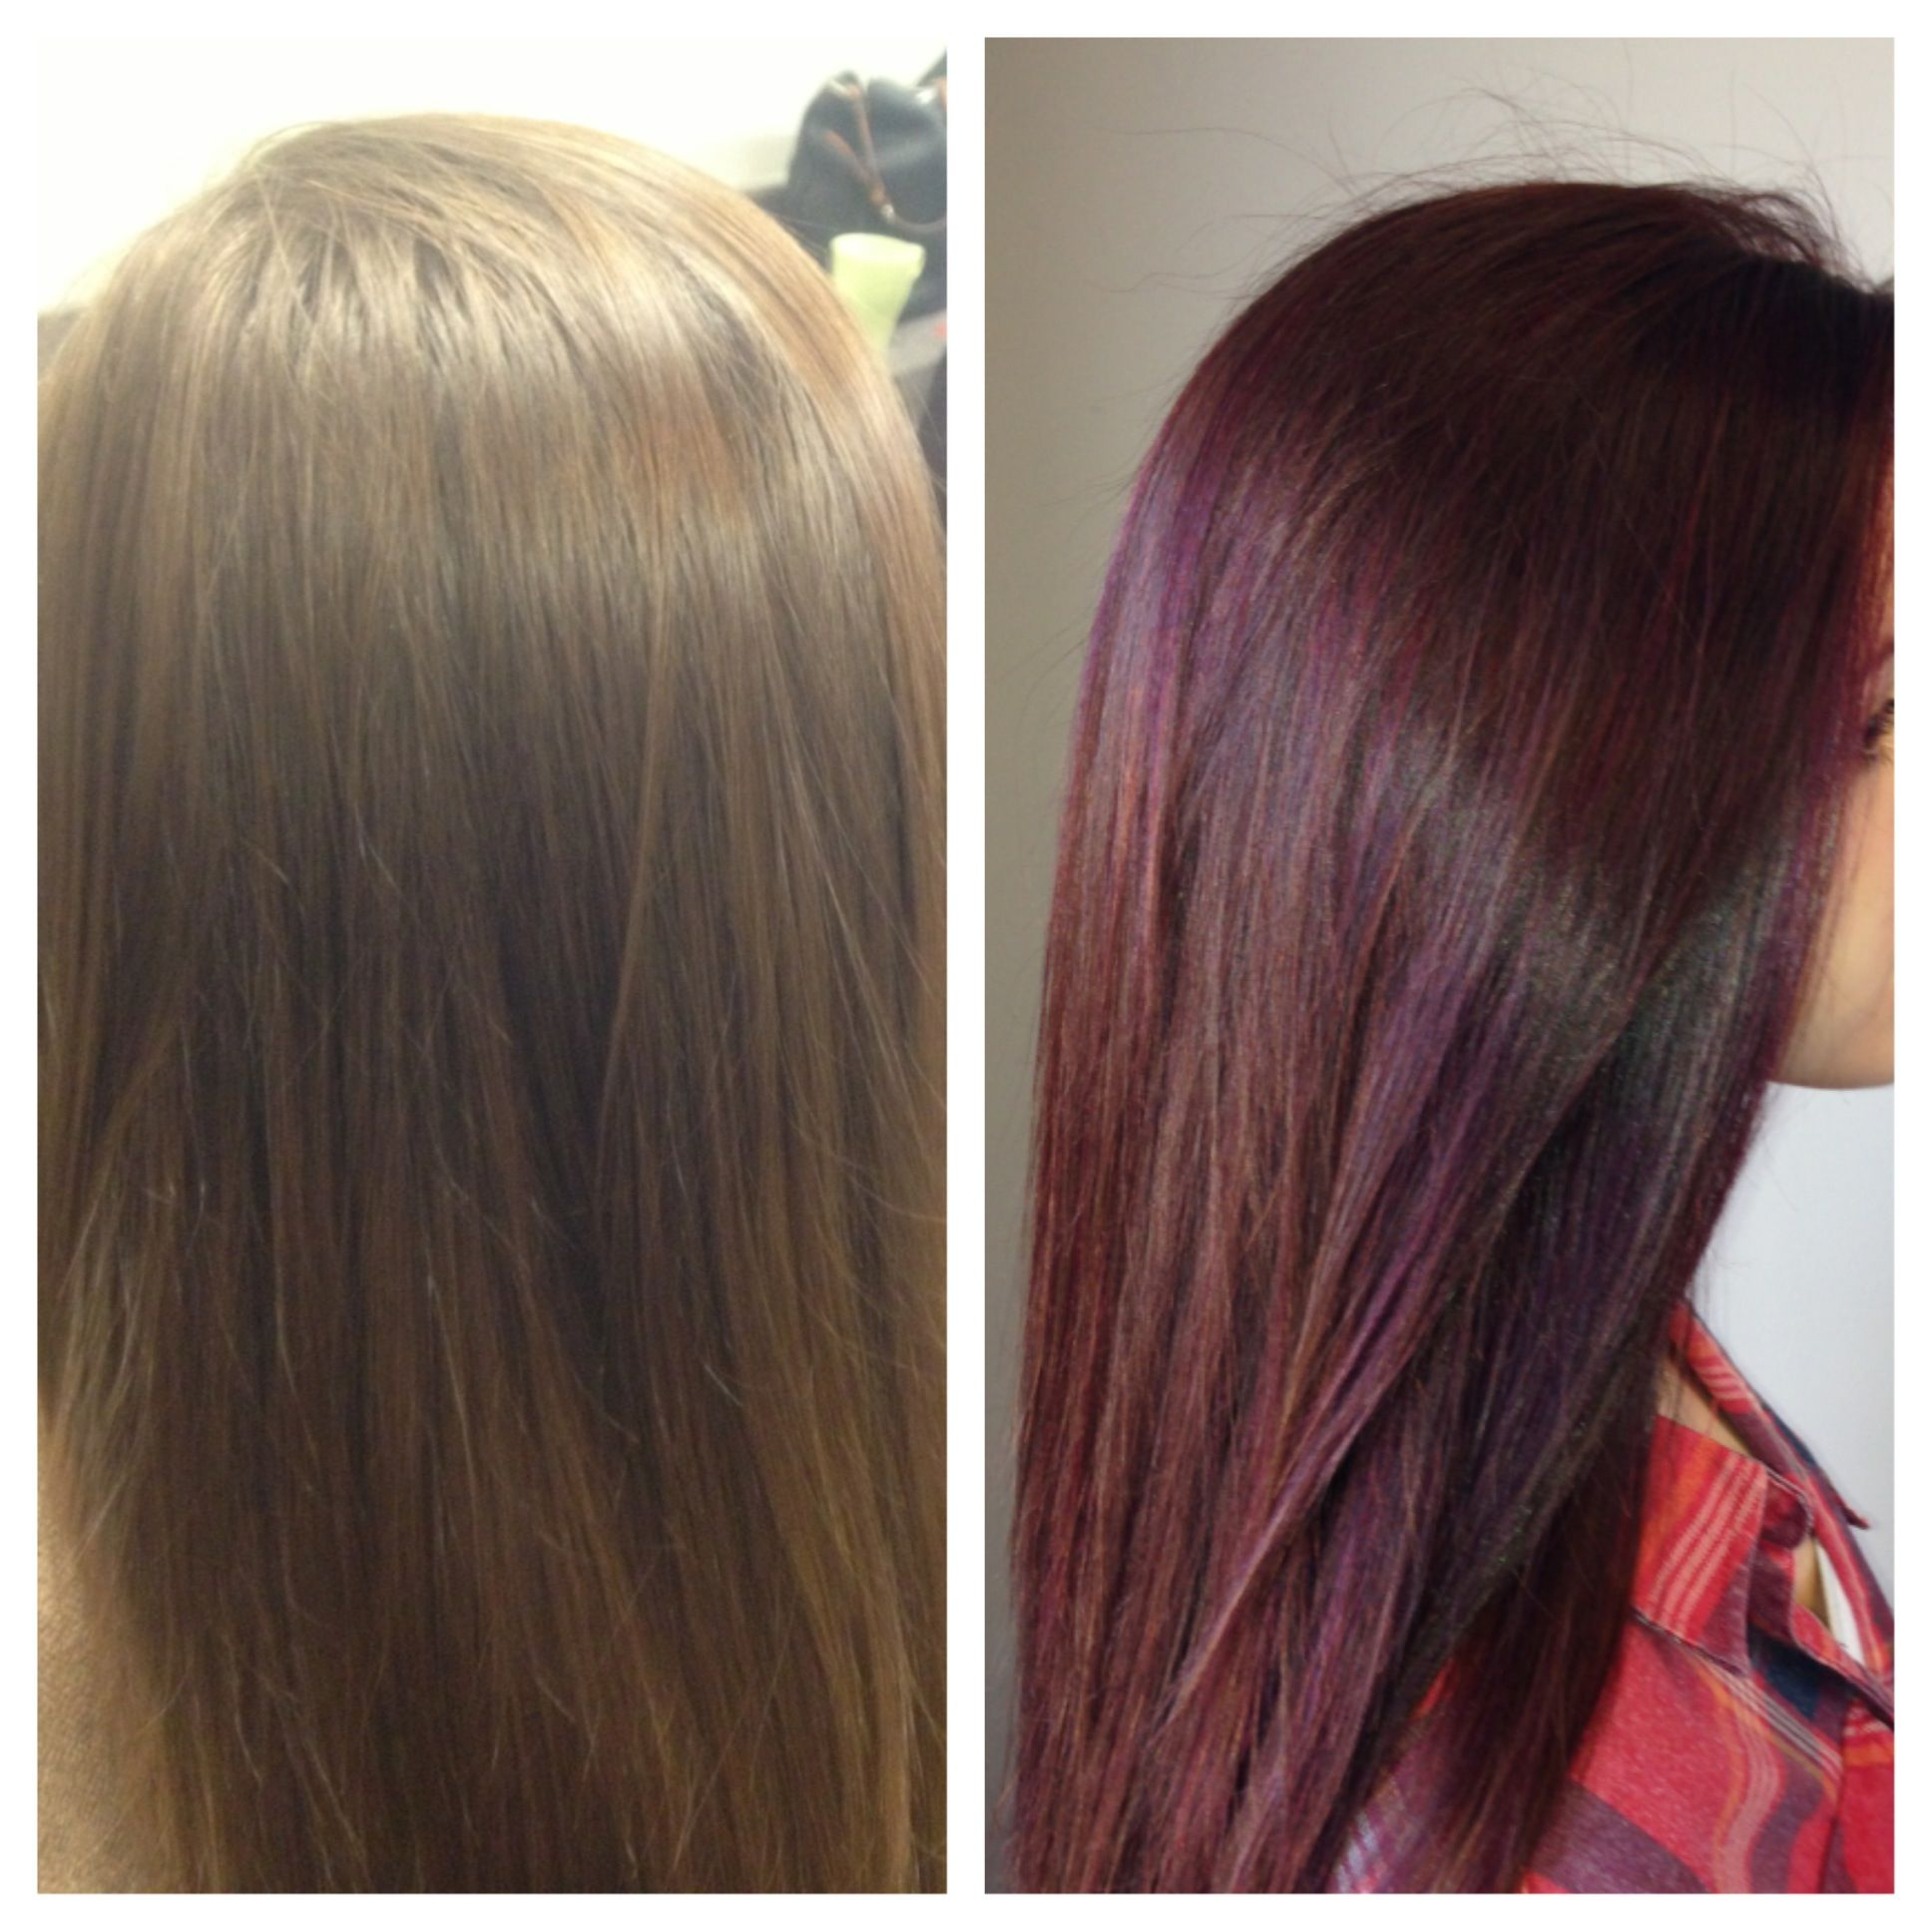 Medium Brown Hair With Lowlights: Dark Red Lowlights With Chocolate Brown Base Color! I